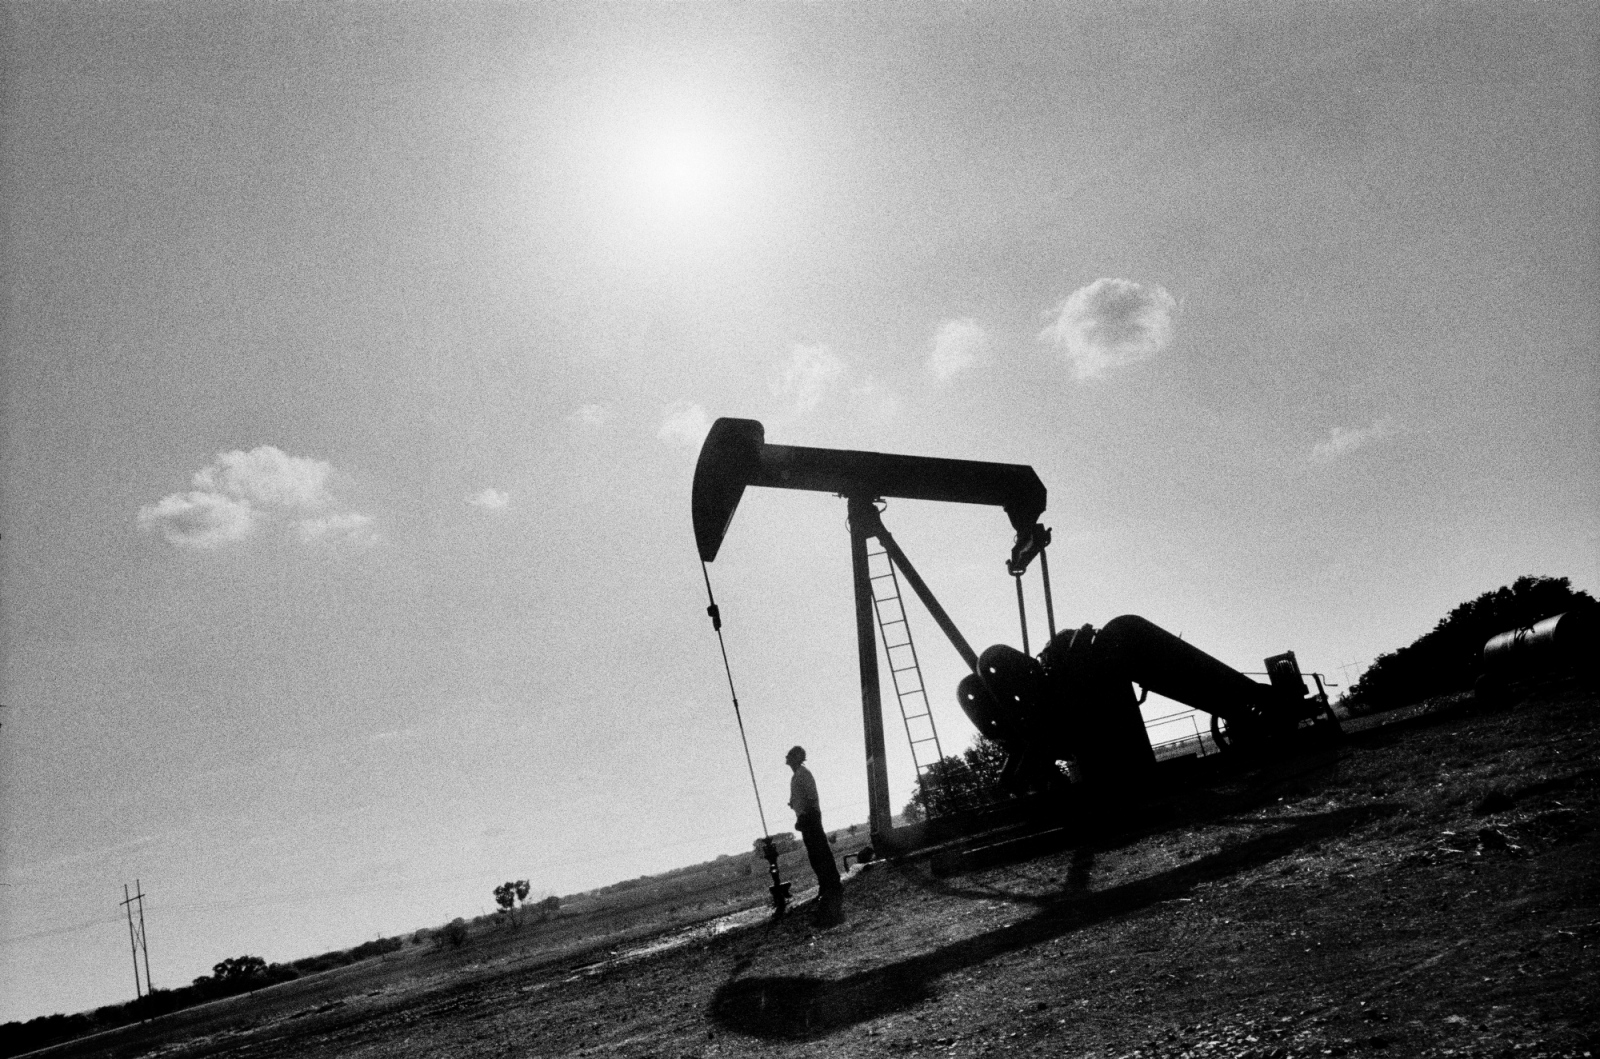 His father an oil man, Oklahoma oil rig dreaming.